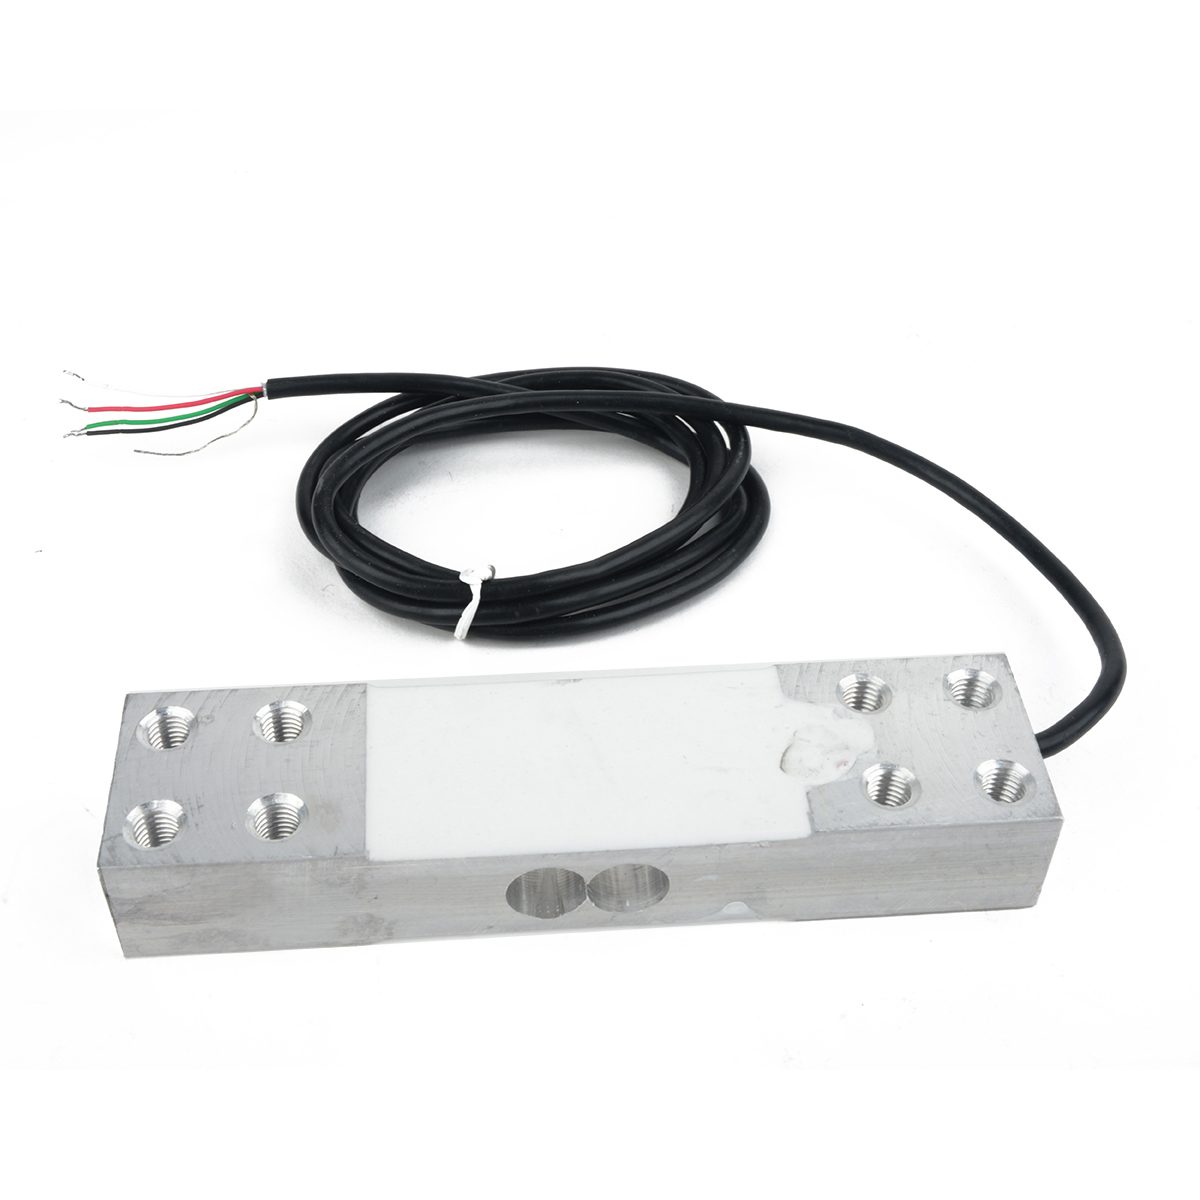 1pc 200kg Electronic Balance Platform Scale Load Cell Weight Weighing Pressure Sensor Mayitr High Precision Tool Parts pressure sensor output amplifier 0 10v 4 20ma transmitter rw st01a weighing force measurement balance load cell amplifier